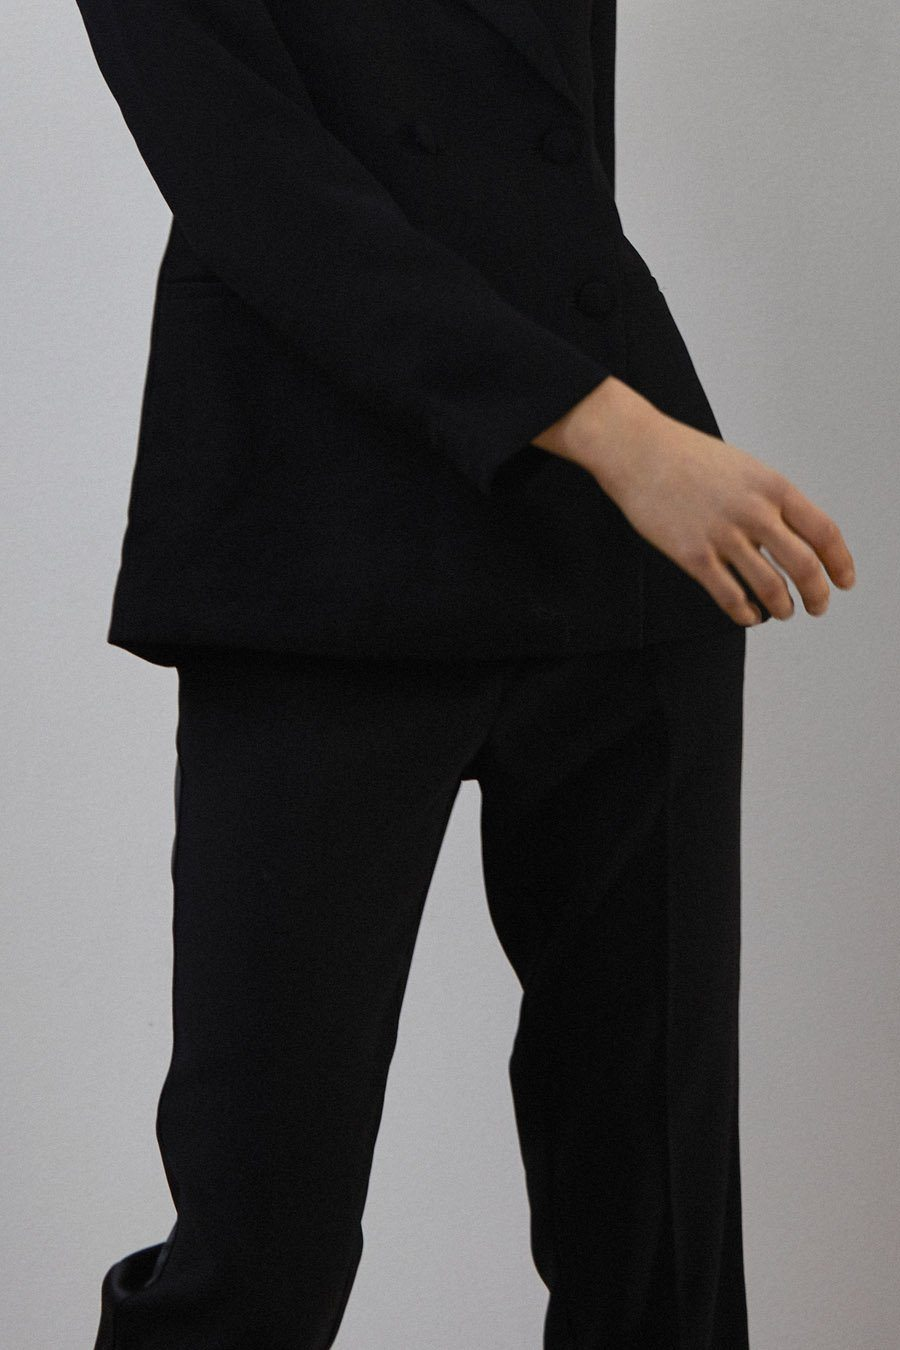 BRIXTON TROUSERS - BLACK Trousers Stylein